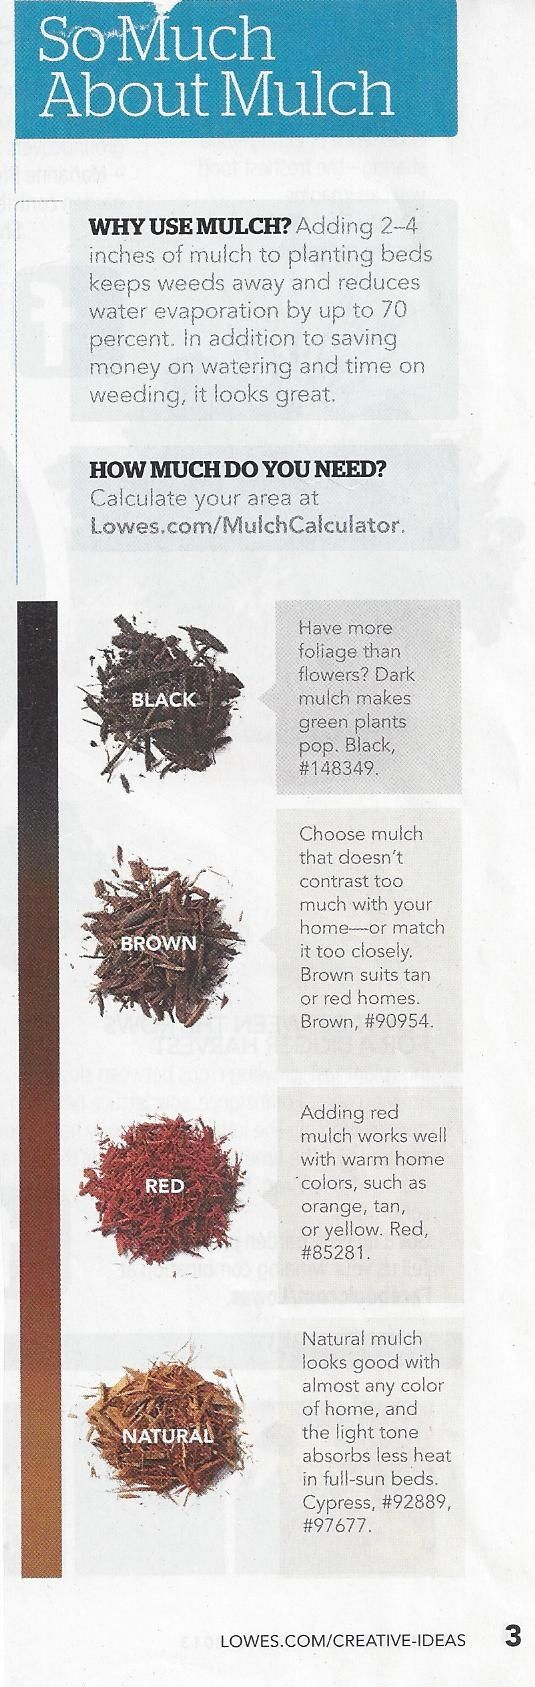 Mulch  How much do you need?  (from Lowes.com/Creative-Ideas - circlular)